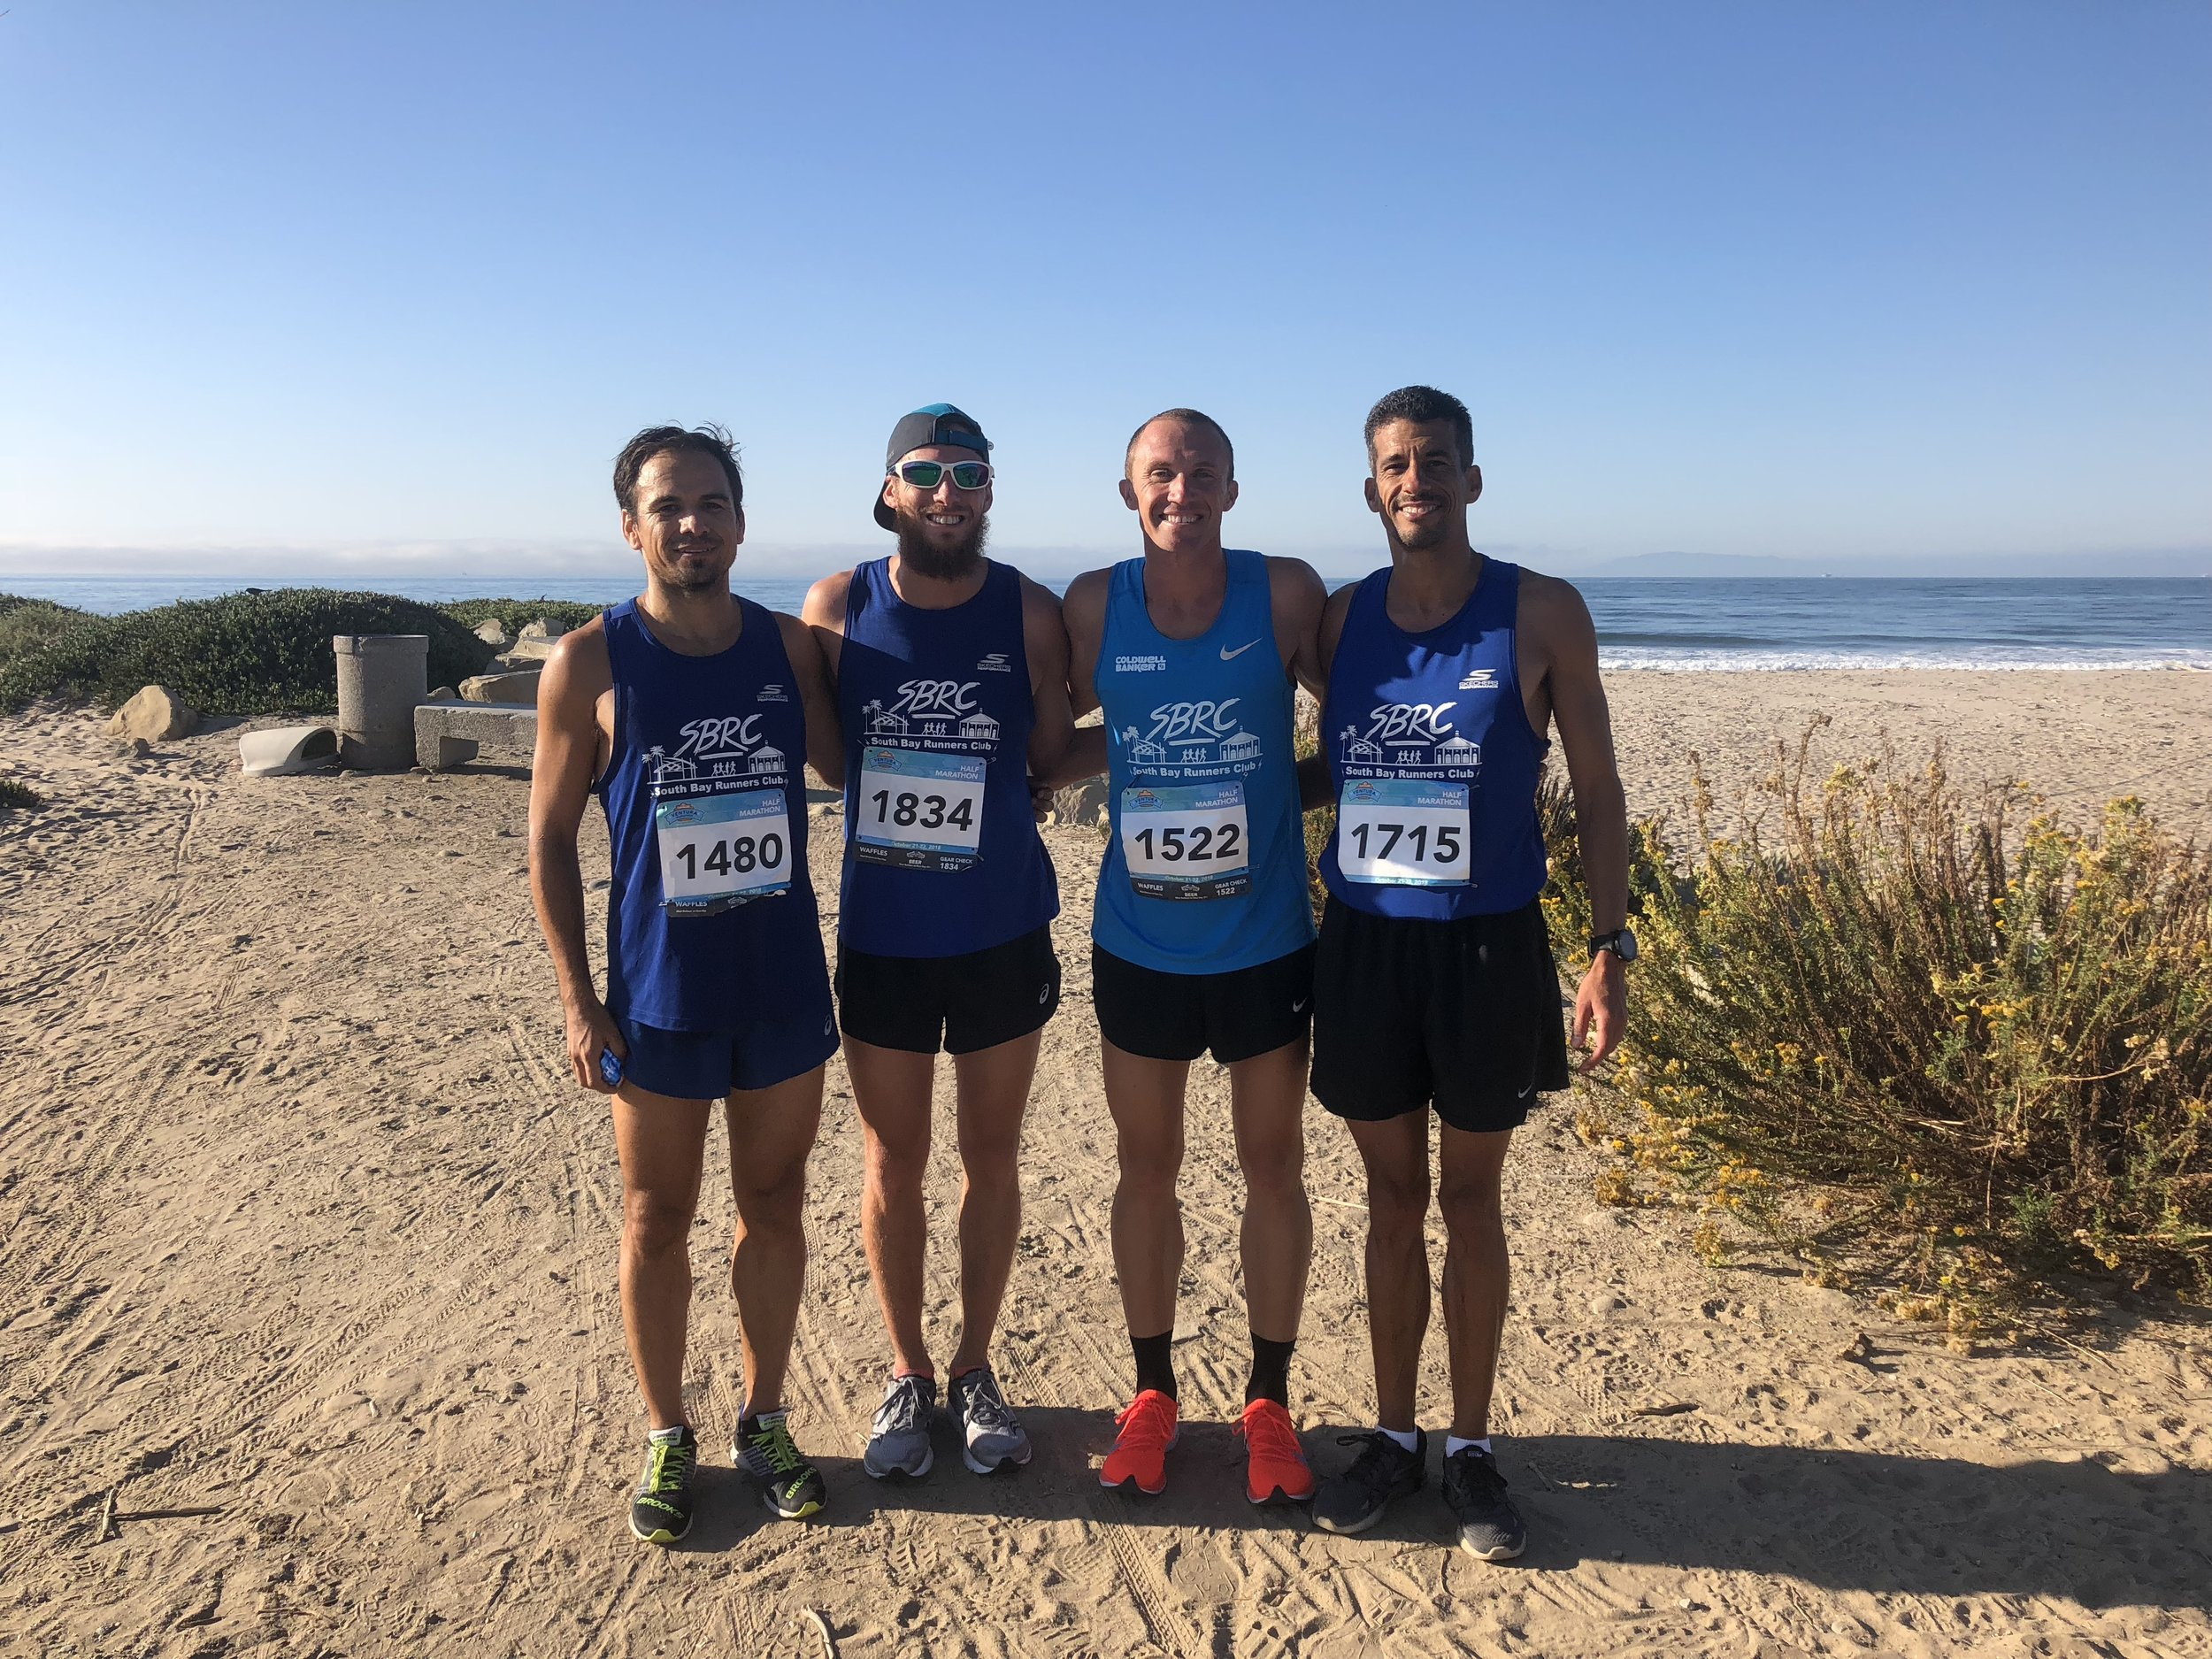 SBRC Team Win - Top 5 guys finished under 1:20 with lots of PR'sAlex(not pictured)- 1:10:37, Rick- 1:16:35, Ismael Henrandez- 1:18:03, Zalmi Orimland- 1:19:19